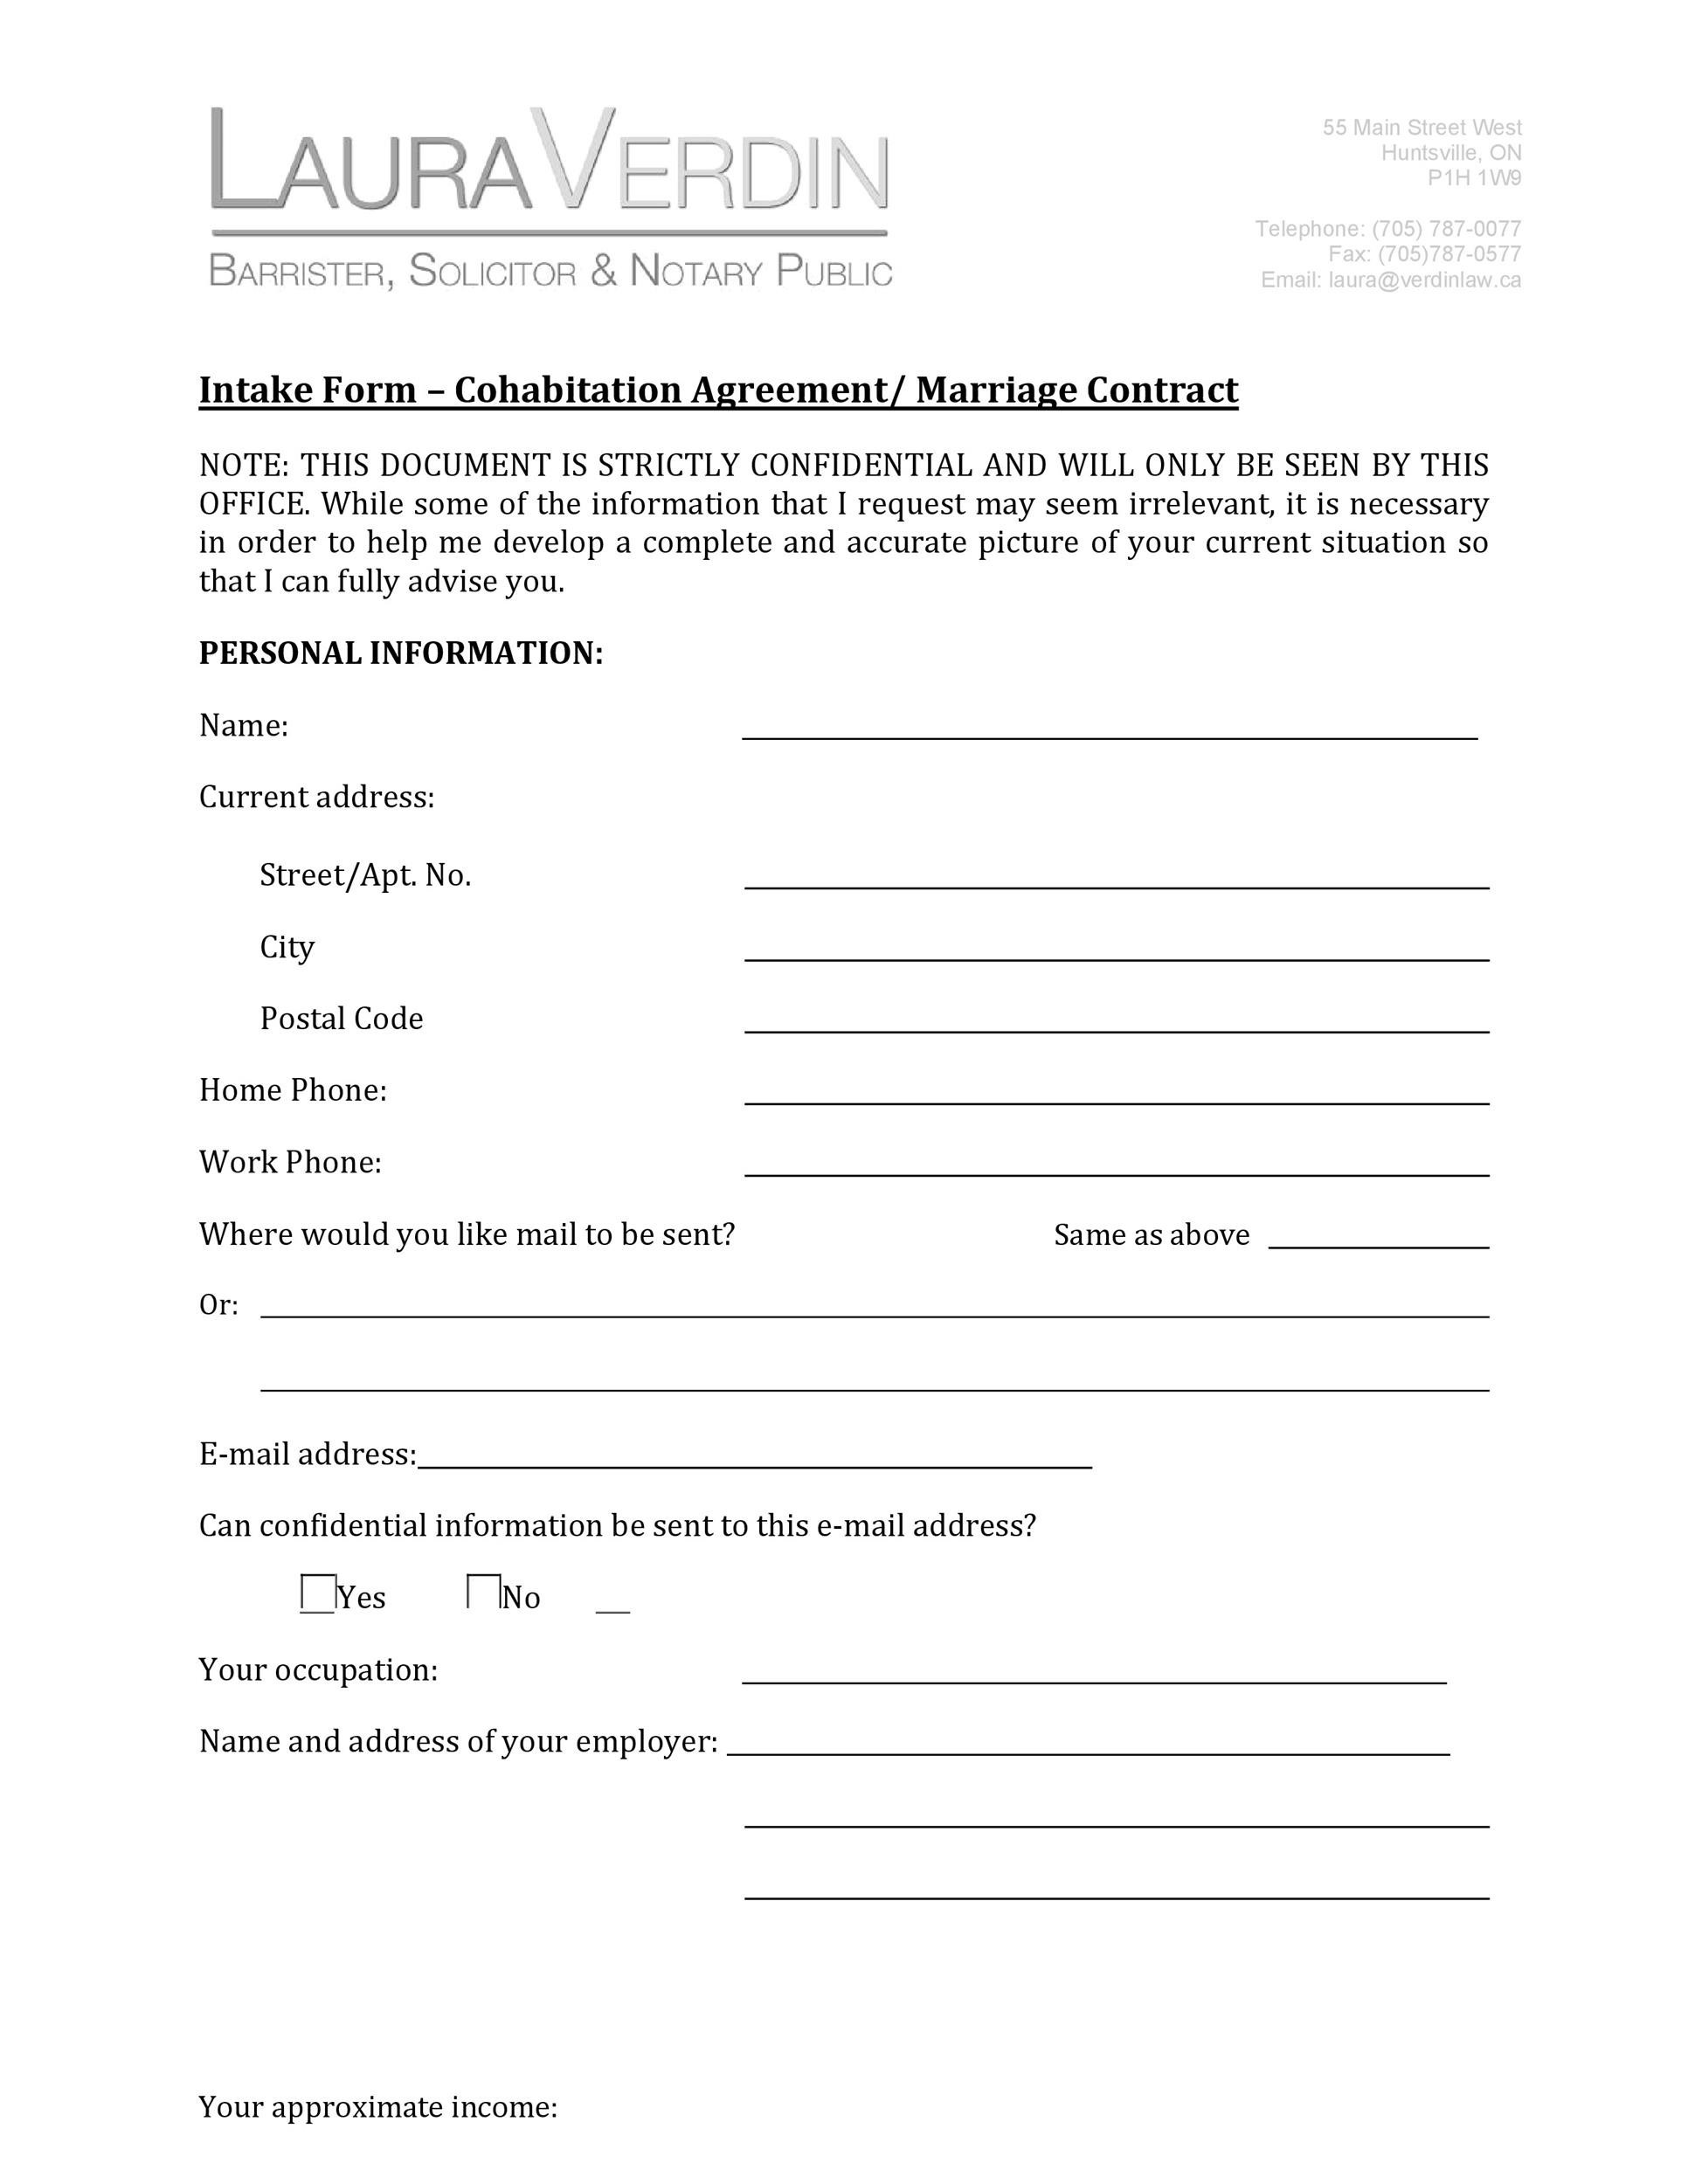 Free cohabitation agreement template 30